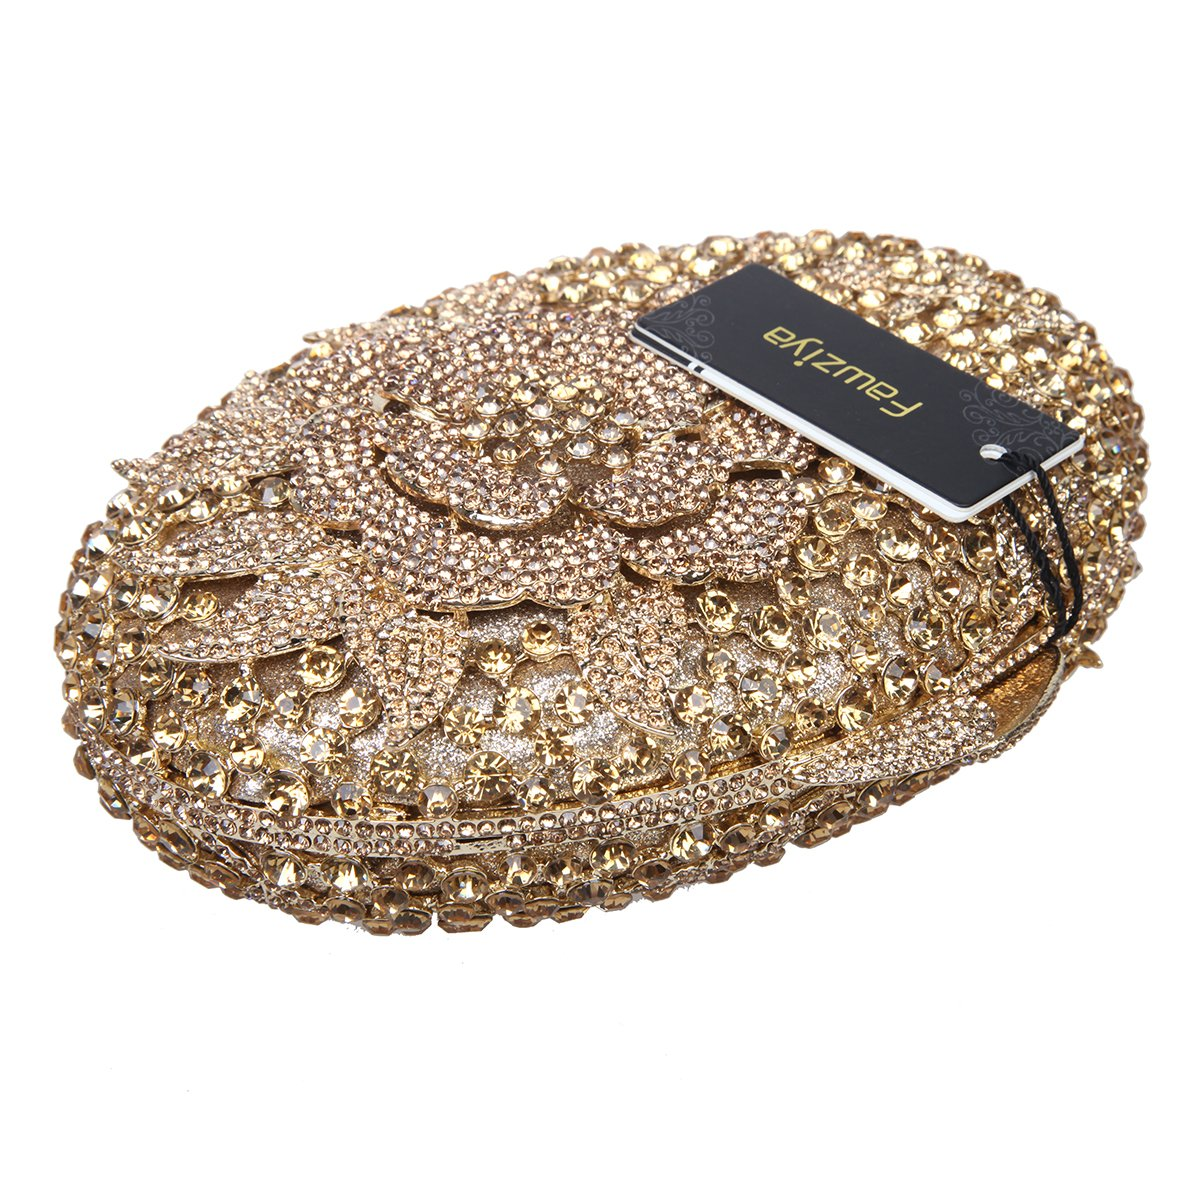 Amazon.com: fawziya Big Rhinestones Flor Embrague Monederos ...